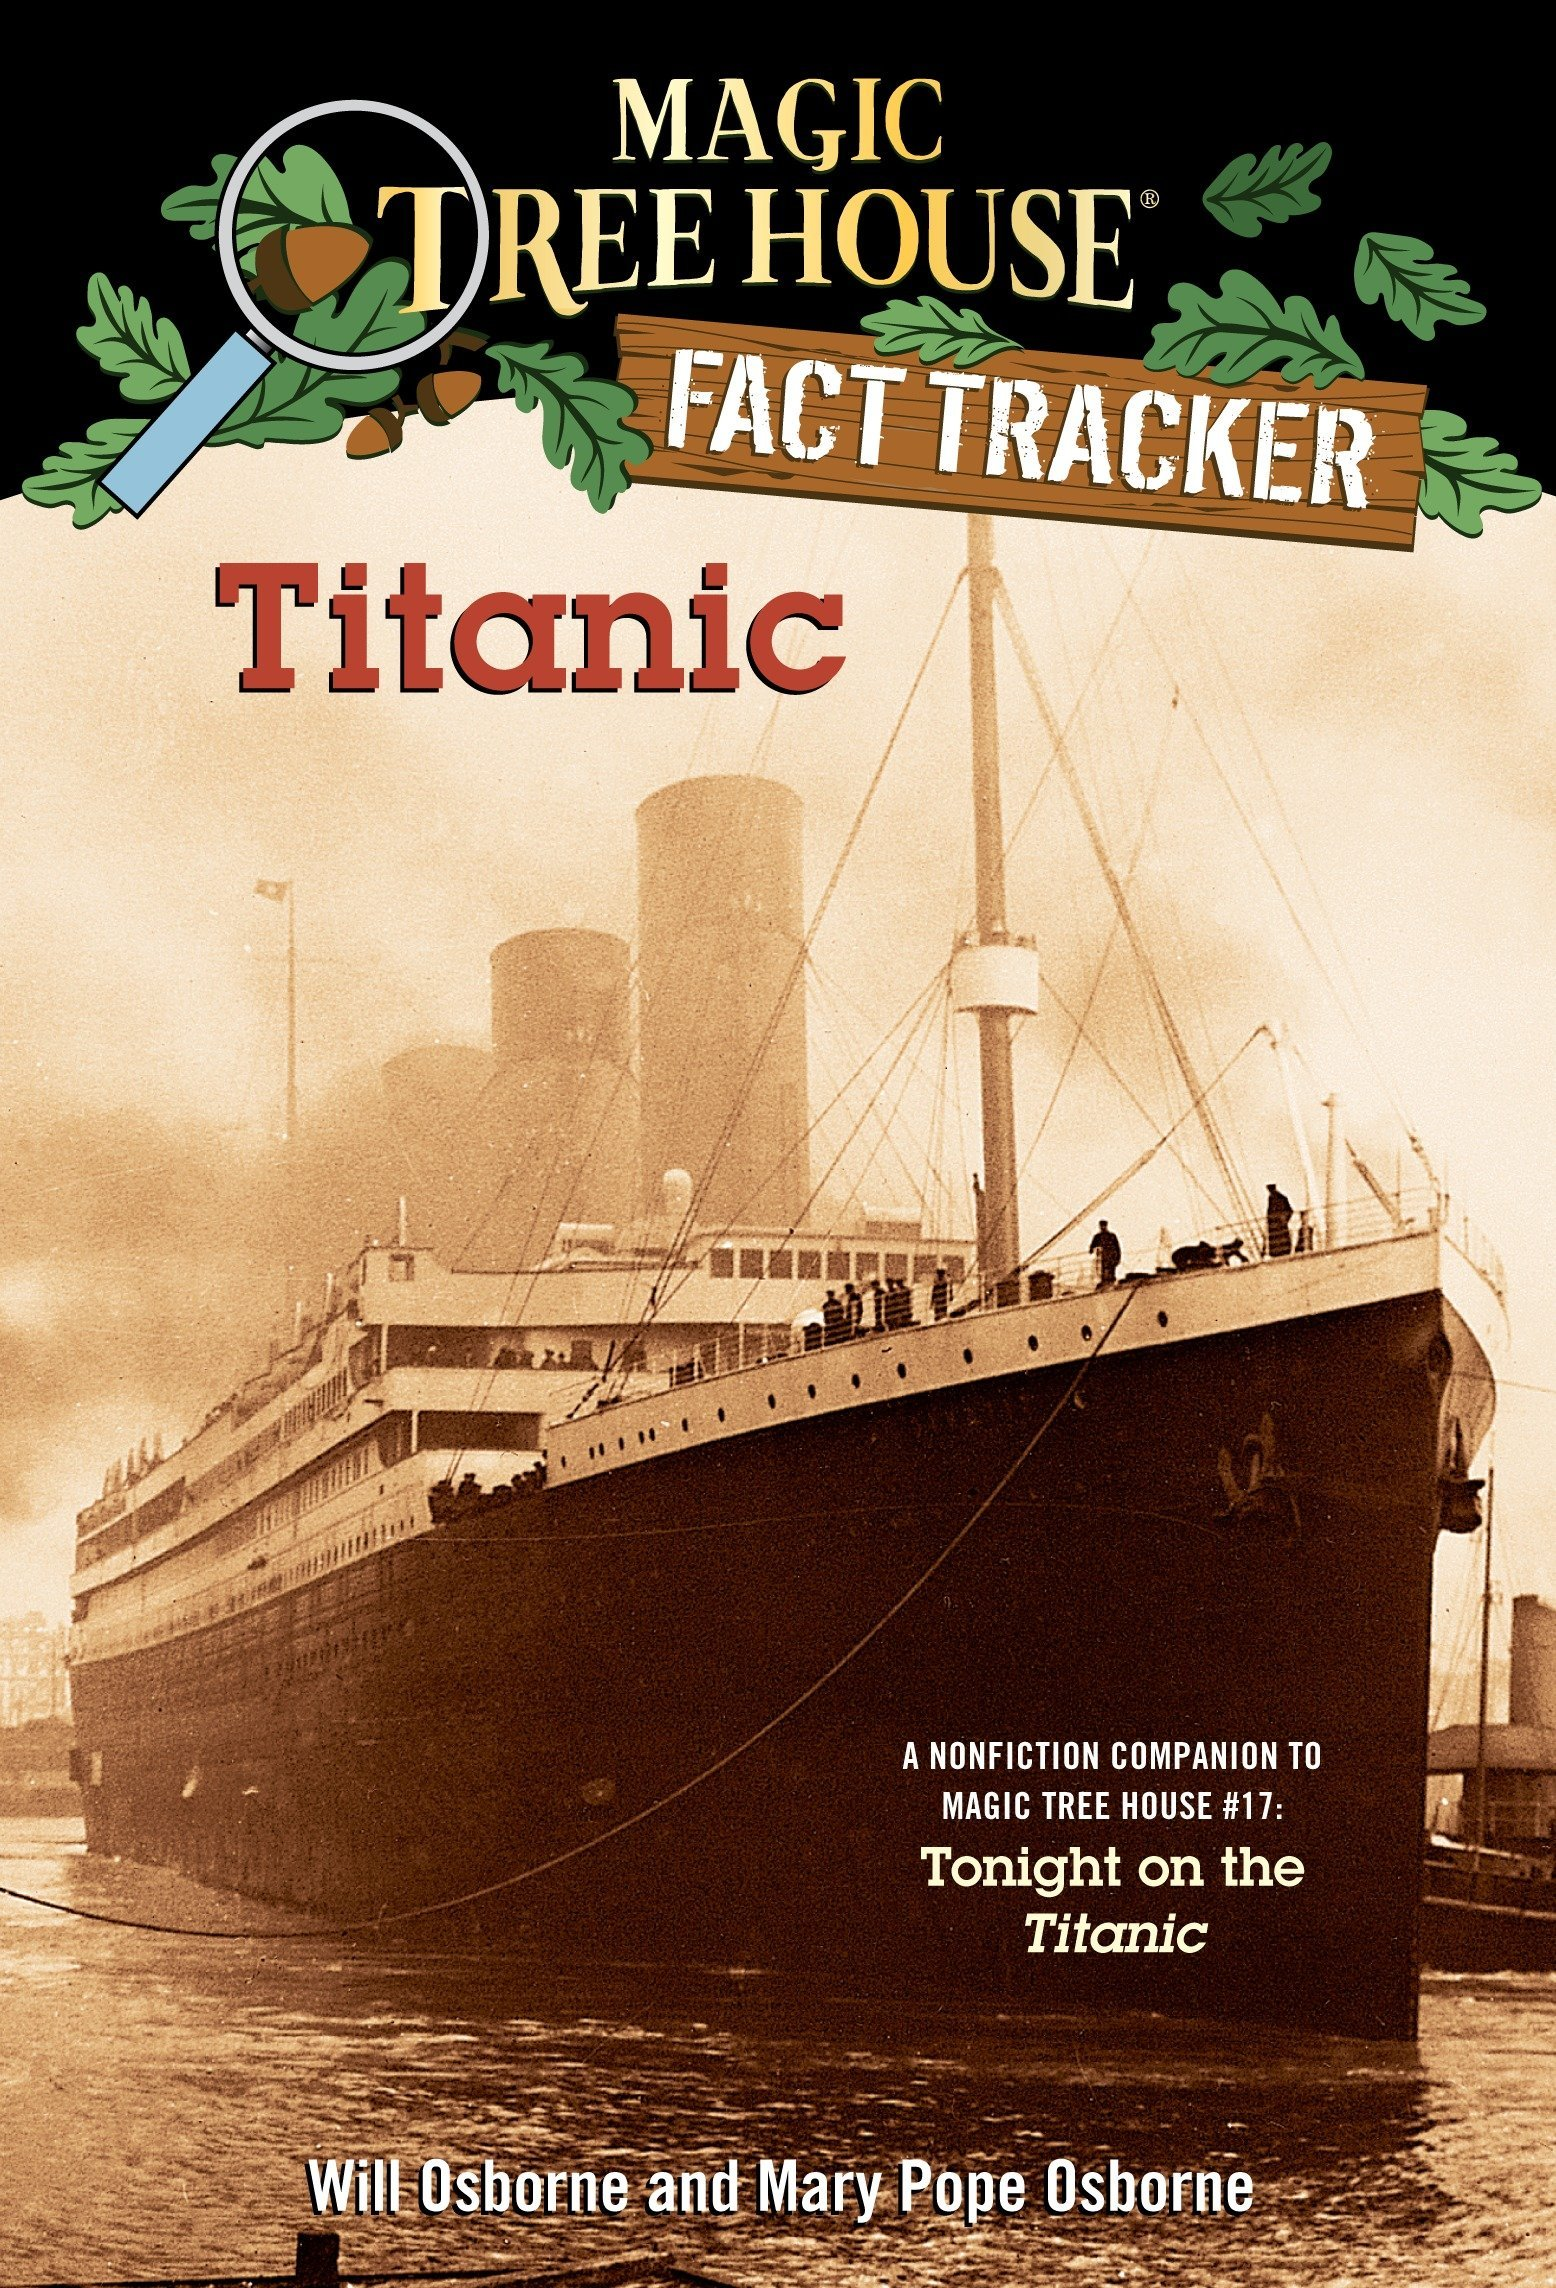 Titanic: A Nonfiction Companion to Magic Tree House #17: Tonight on the Titanic Paperback – August 27, 2002 Mary Pope Osborne Will Osborne Sal Murdocca 0375813578